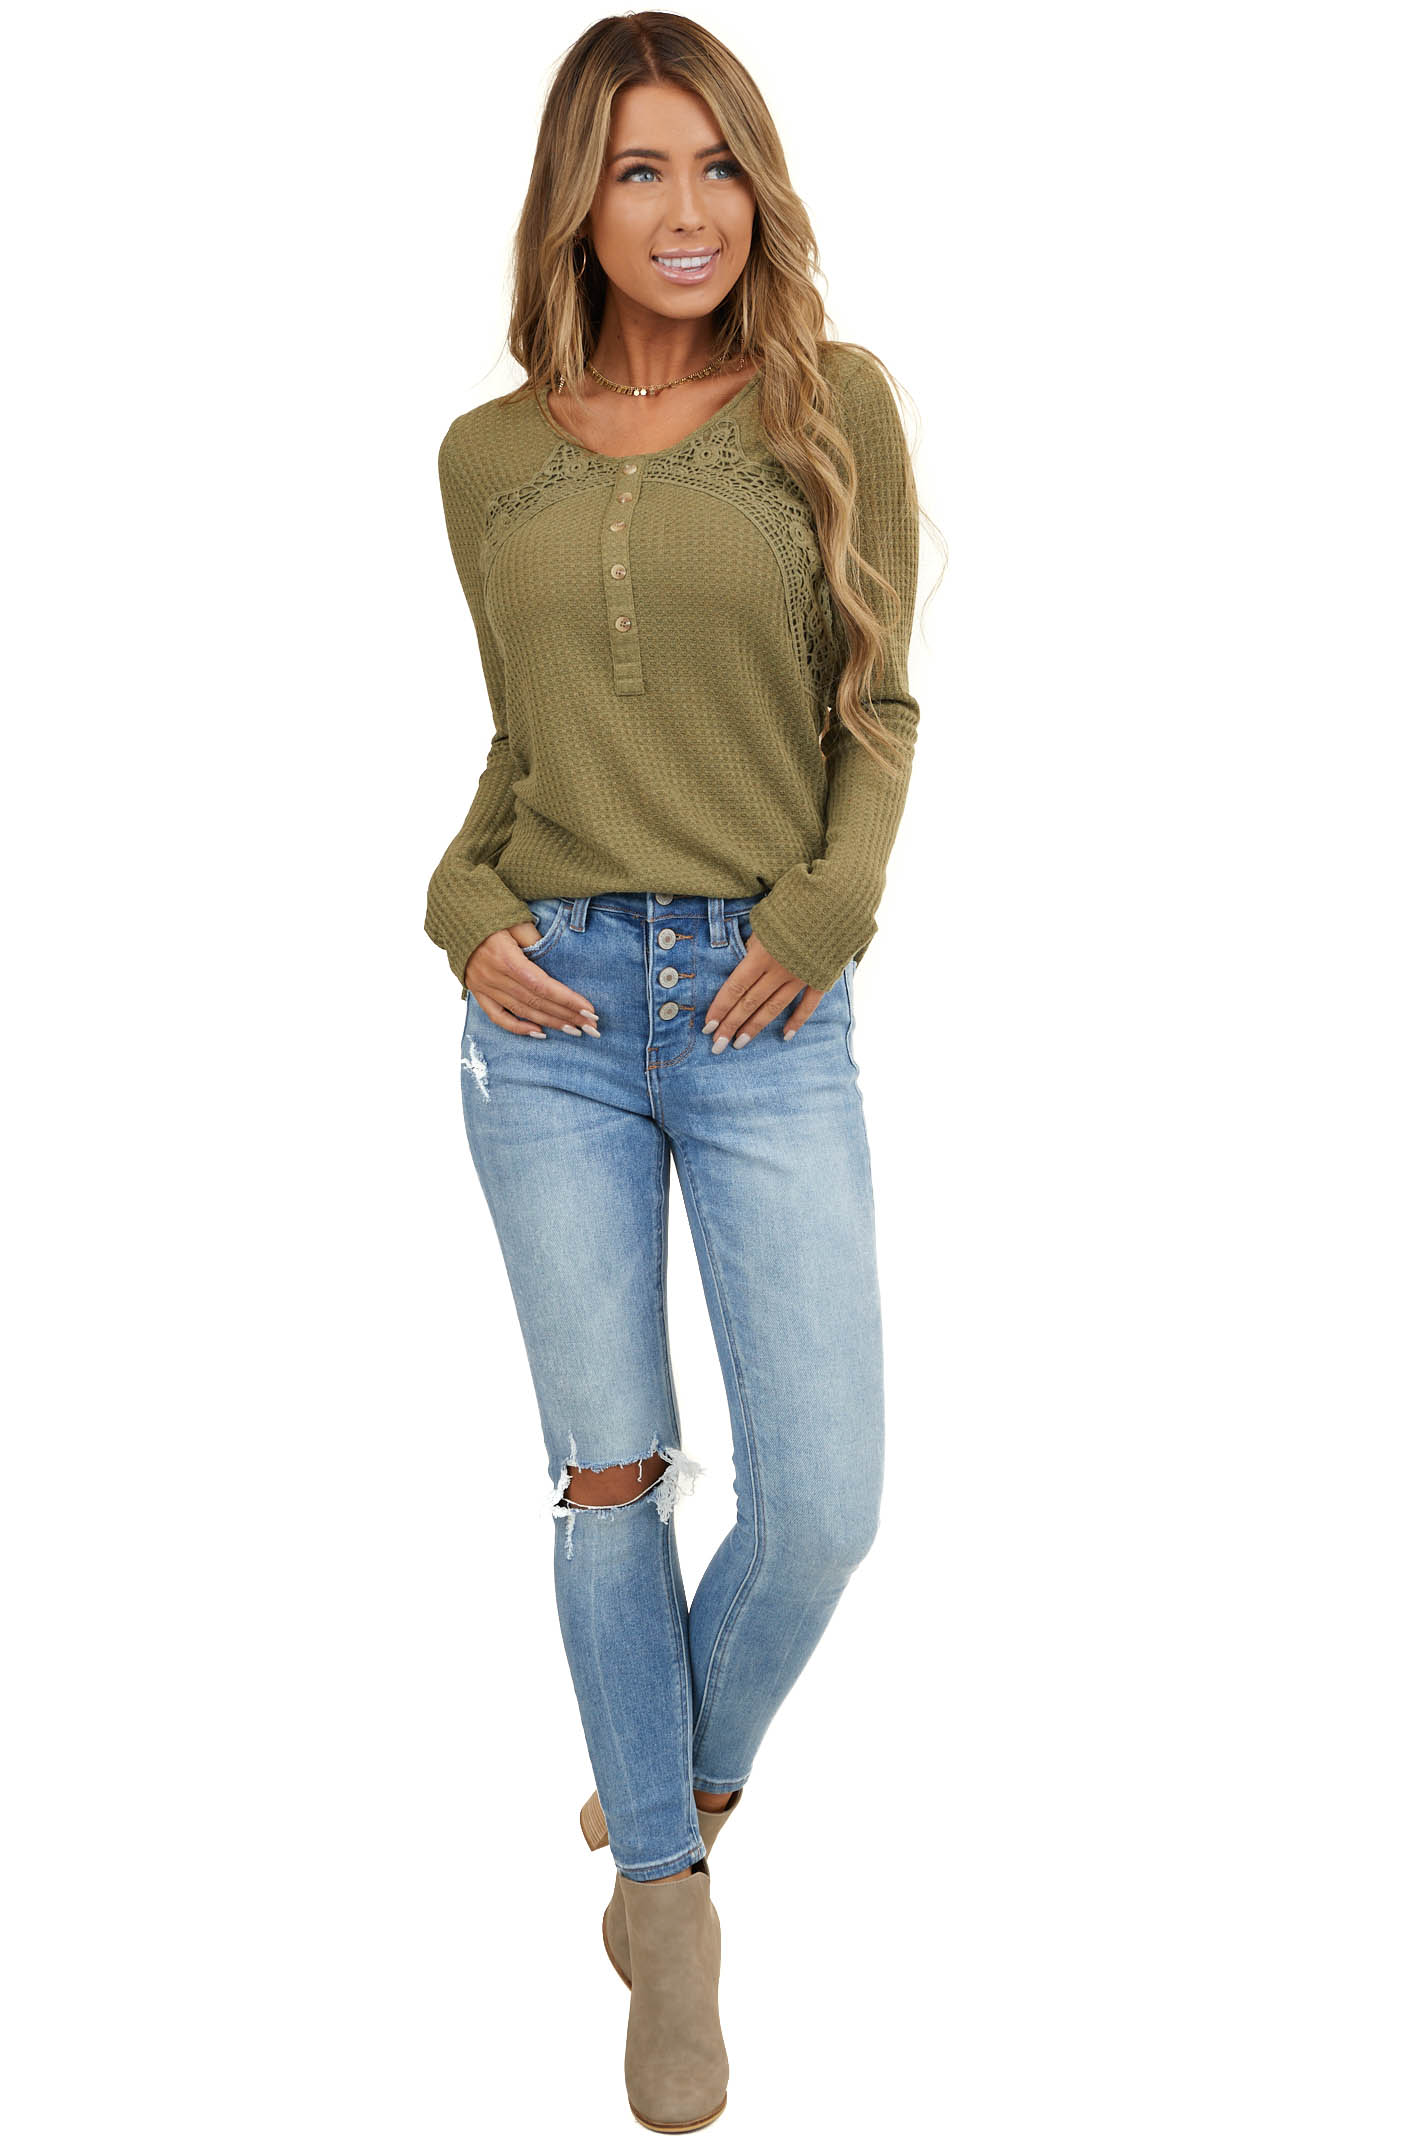 Olive Ribbed Long Sleeve Top with Button and Crochet Details